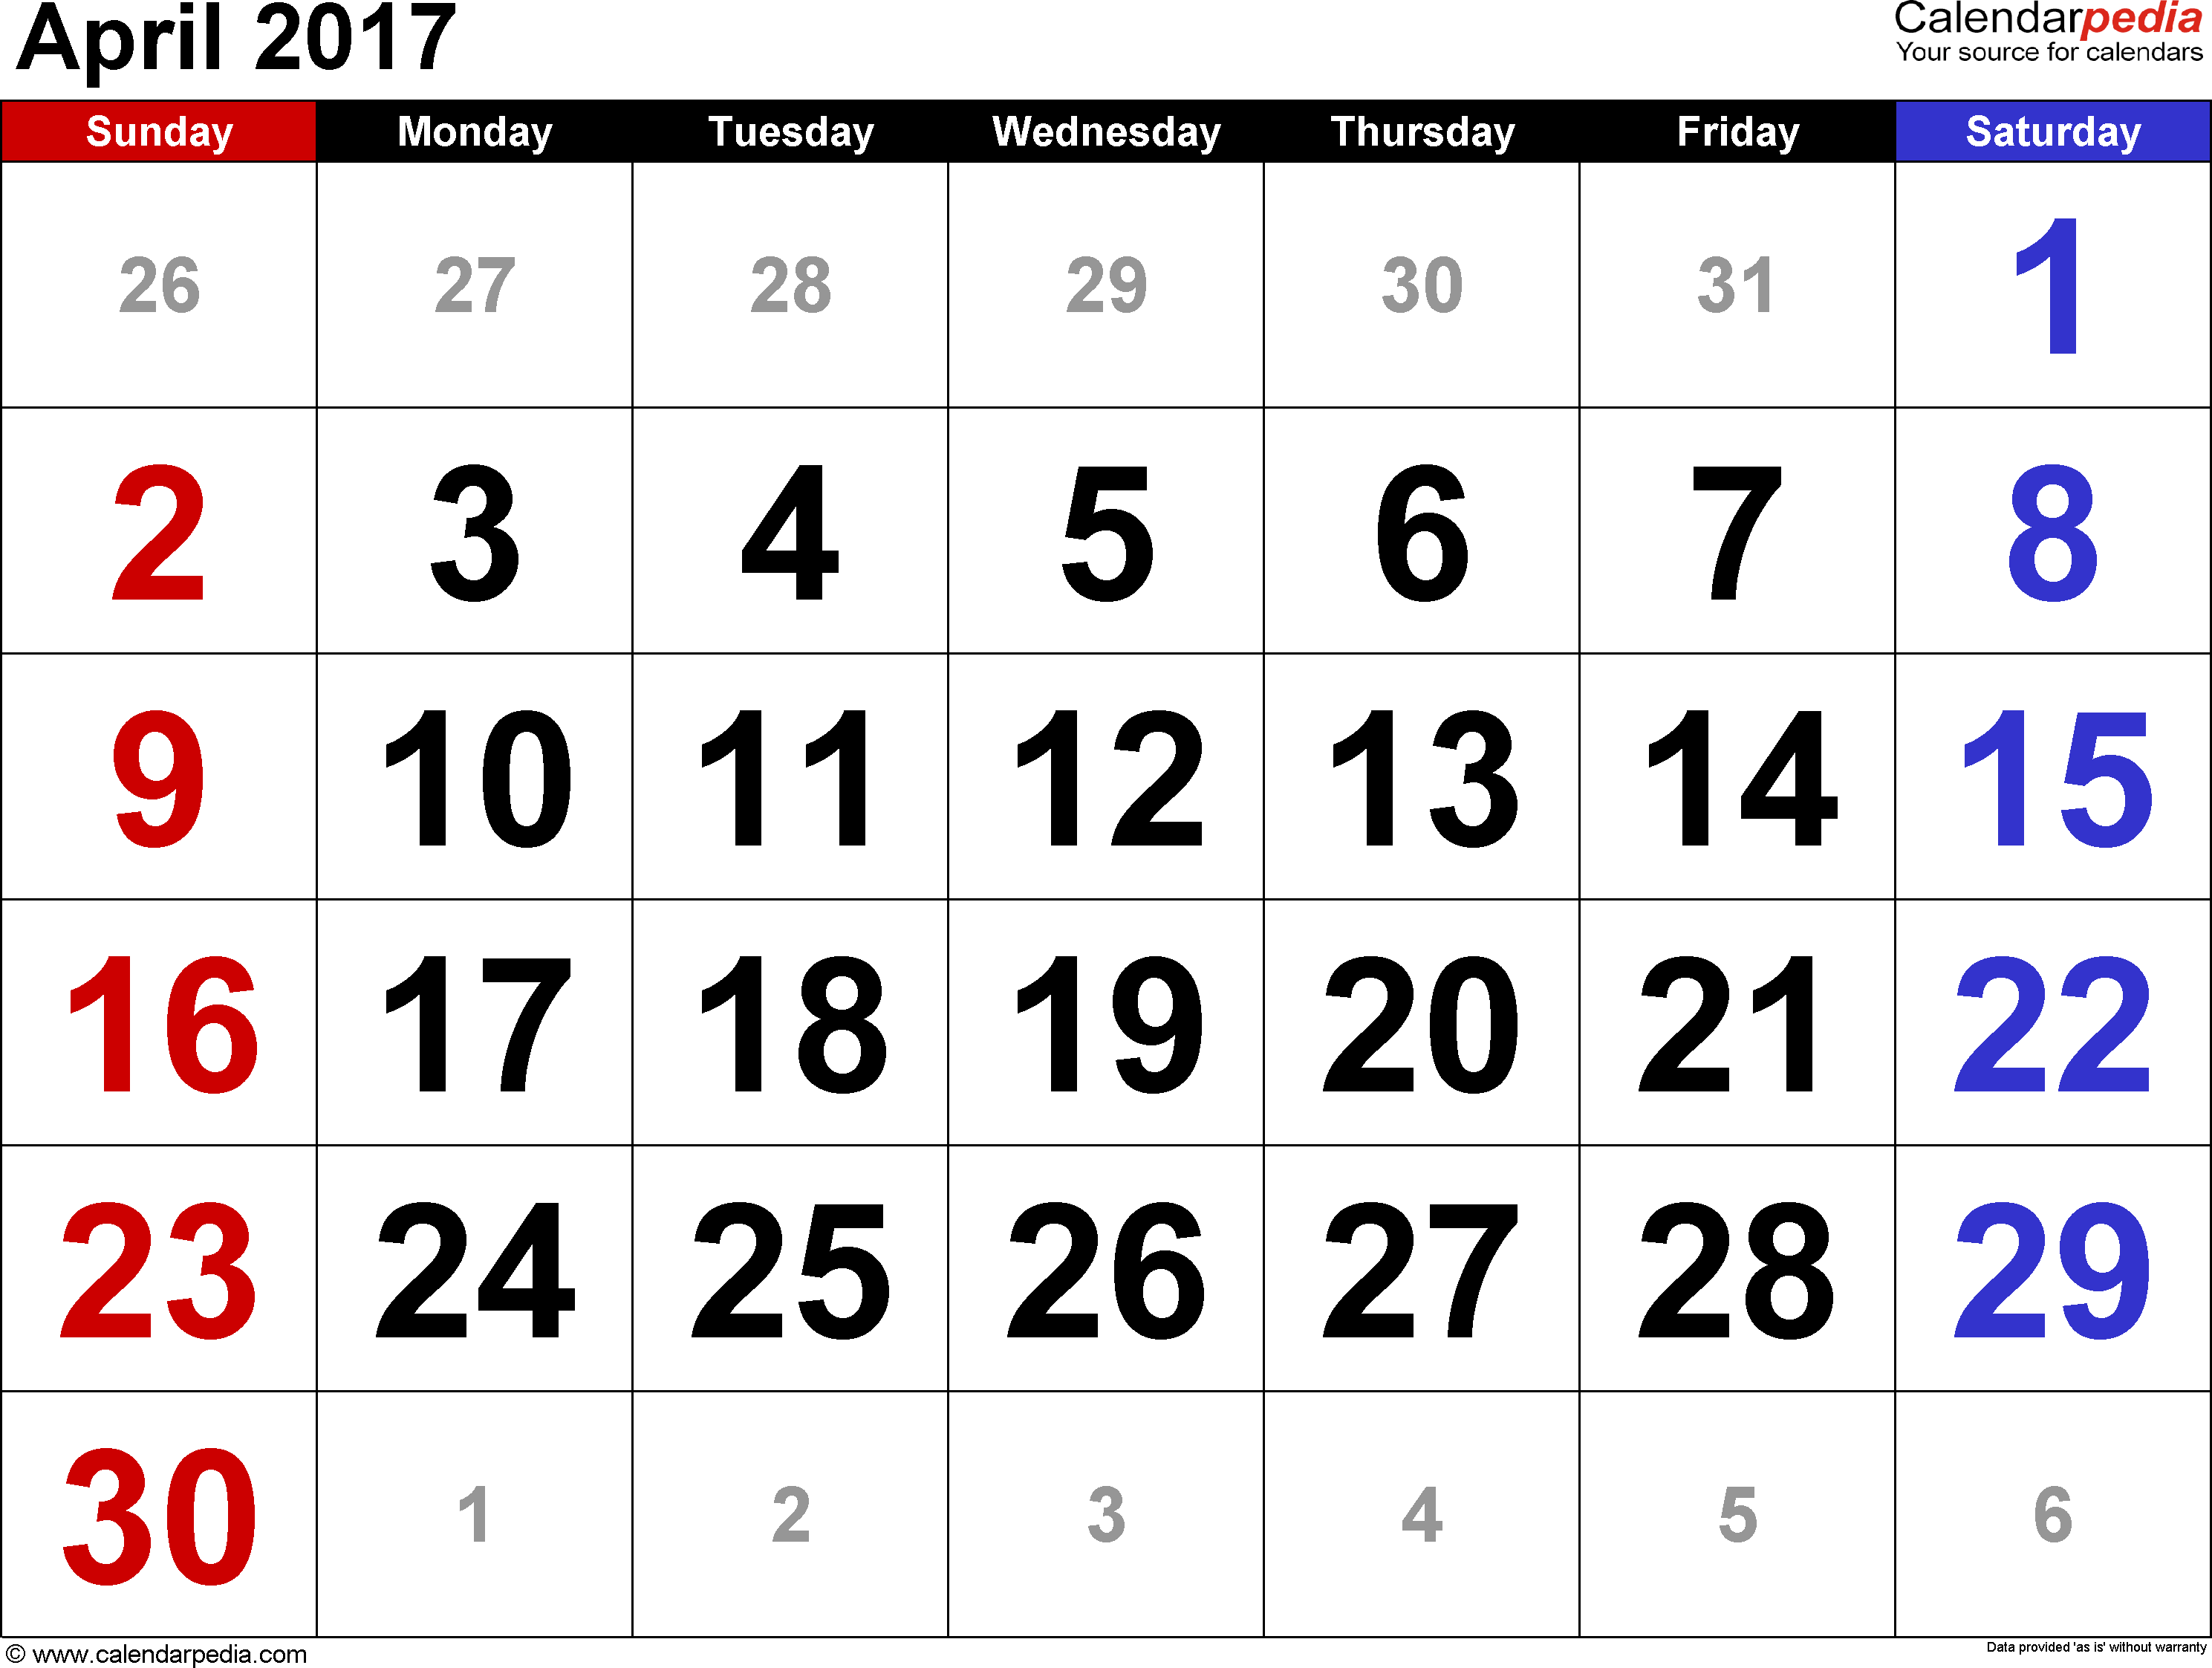 April 2017 Calendars for Word, Excel & PDF